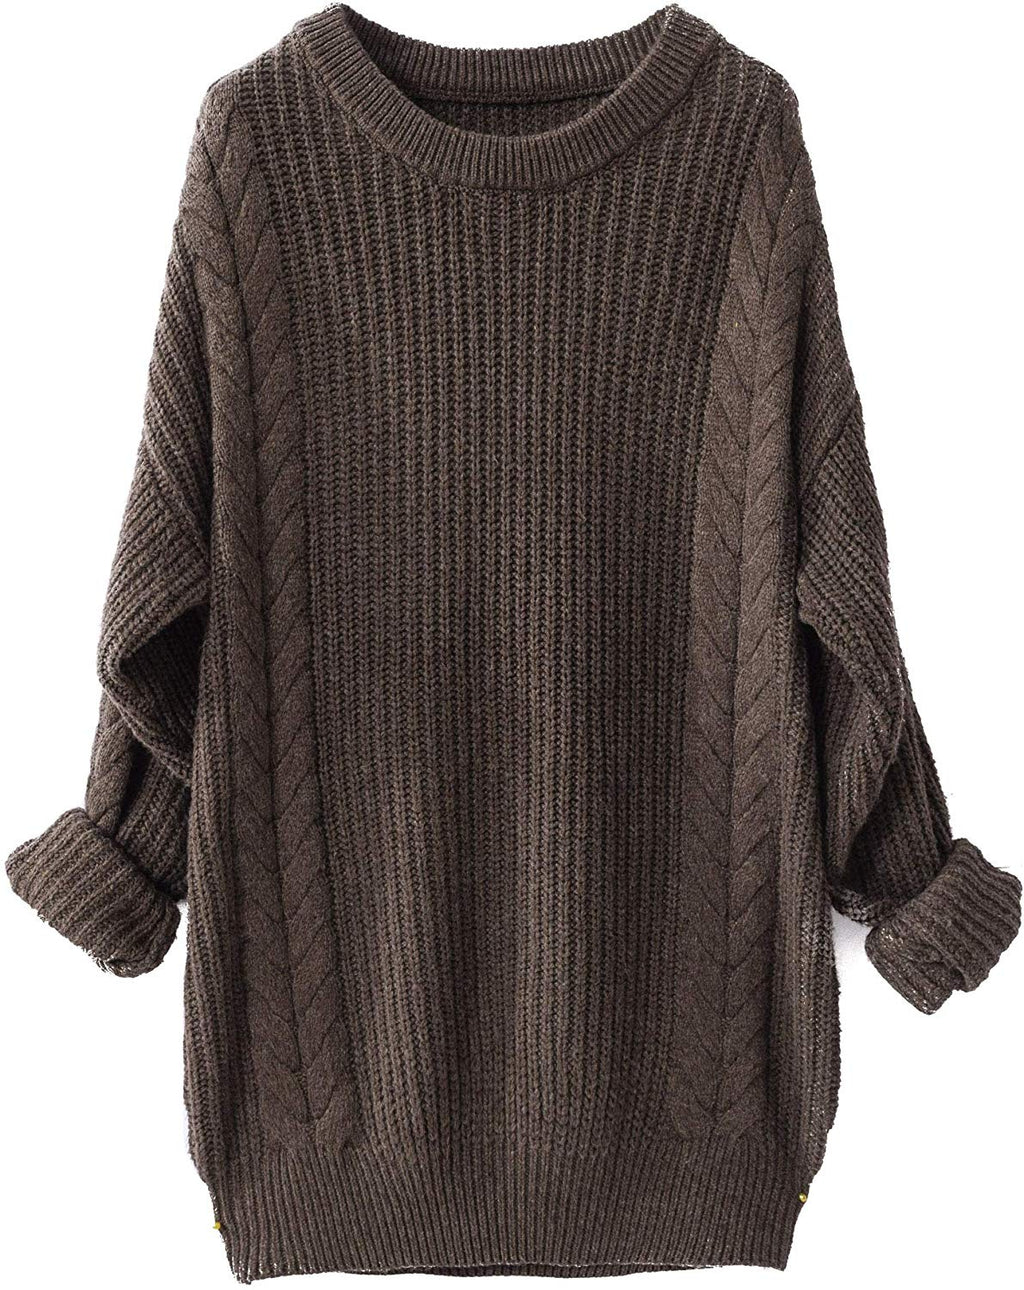 Women's Cashmere Oversized Loose Knitted Crew Neck Long Sleeve Winter Warm Wool Pullover